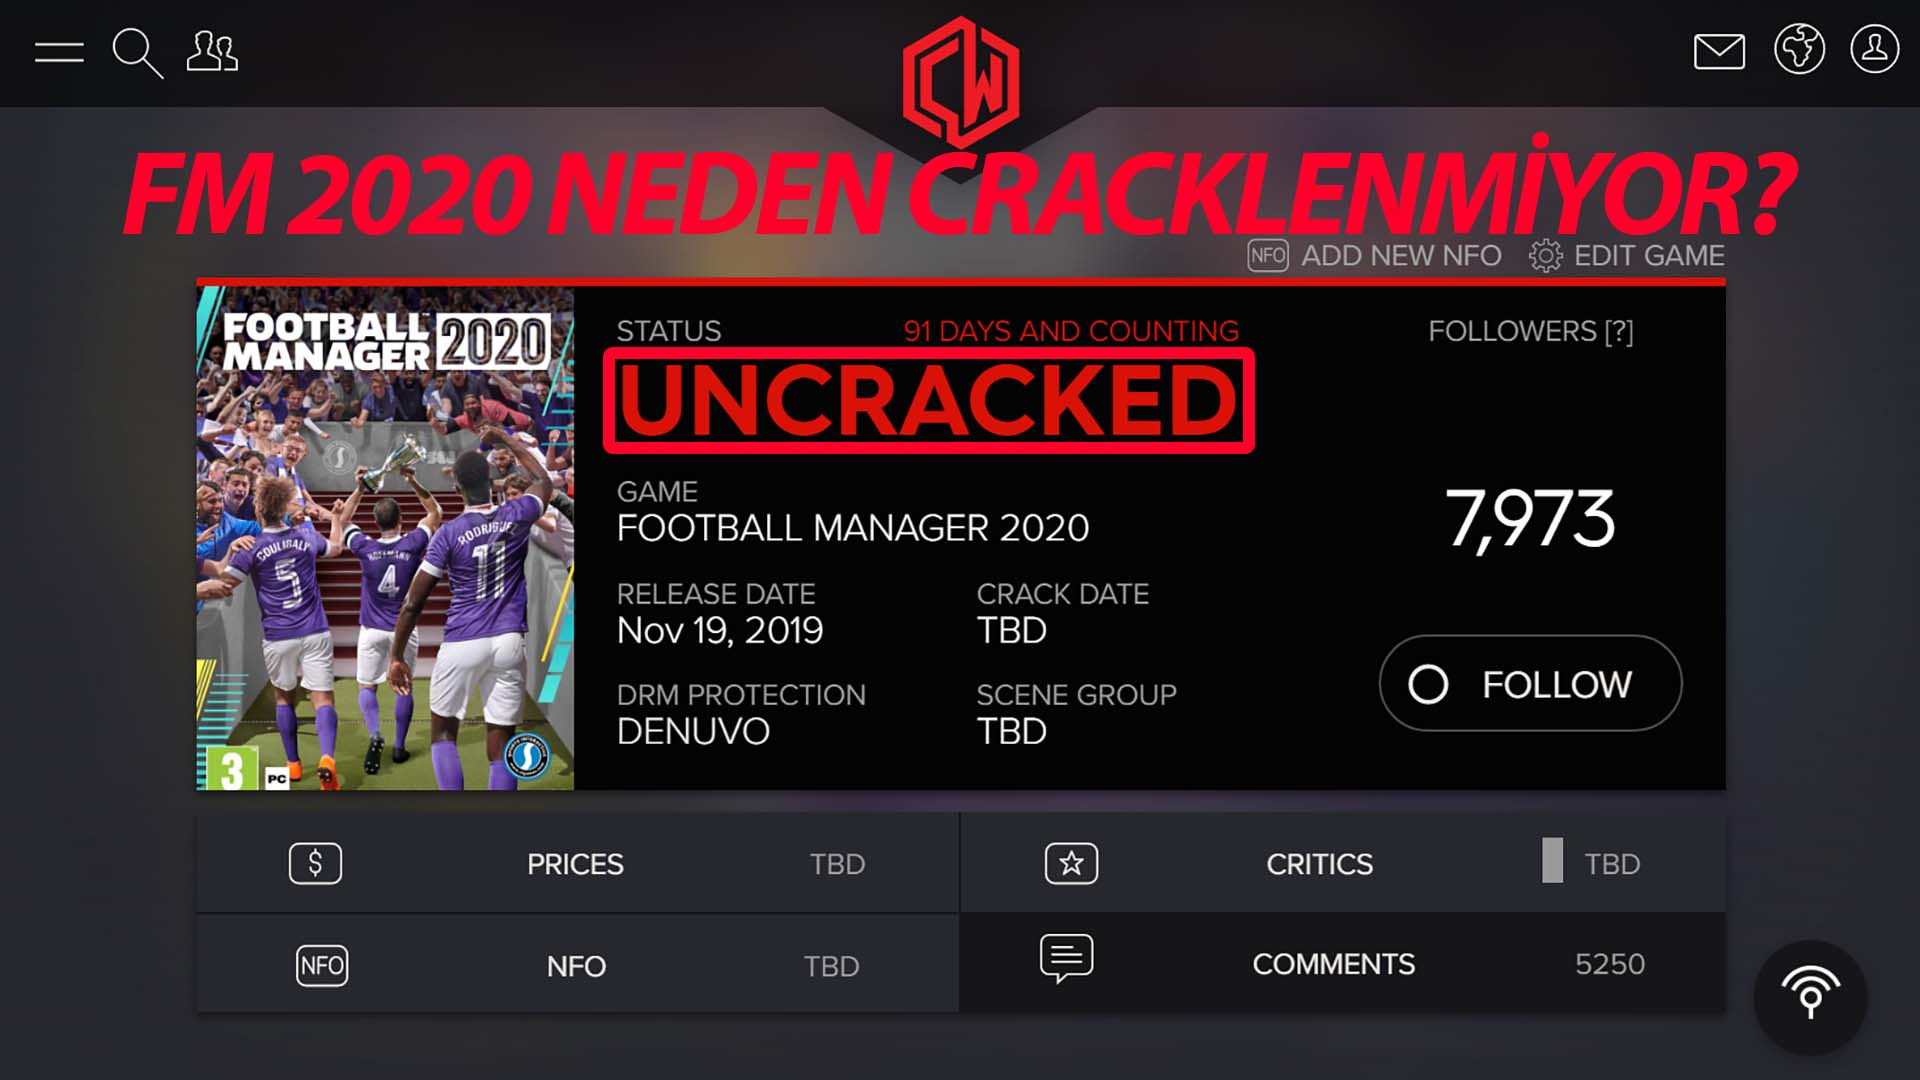 fm 2020 crackwatch